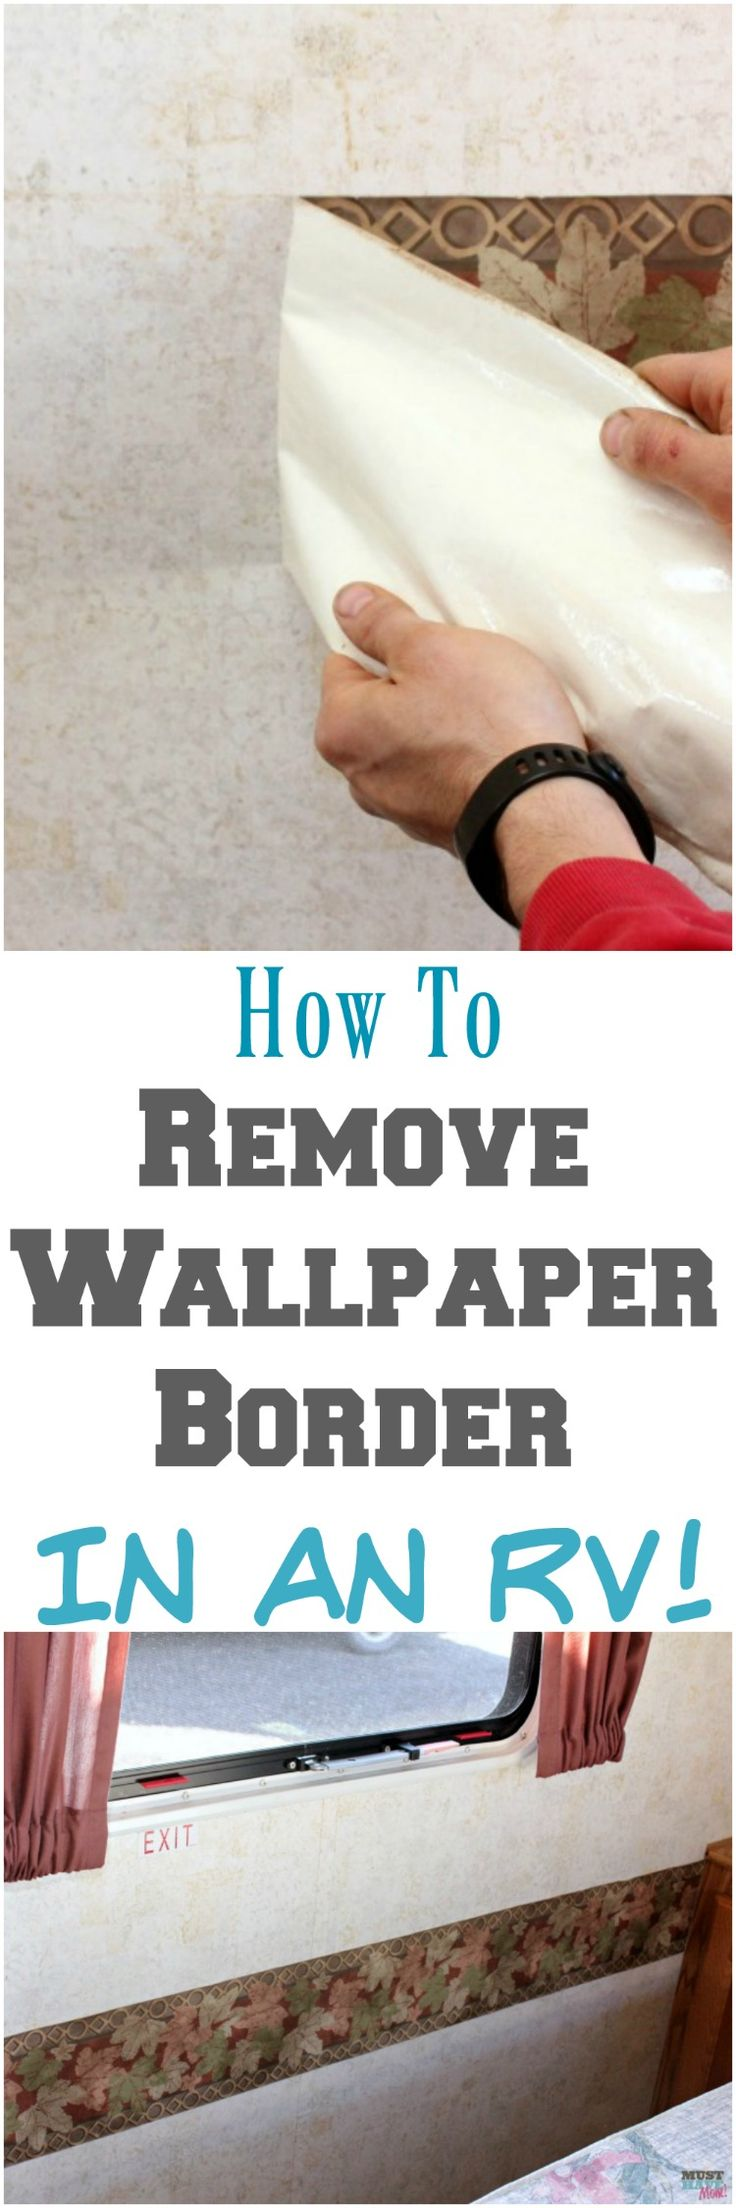 Wall paper remover - How To Remove Wallpaper Border In An Rv